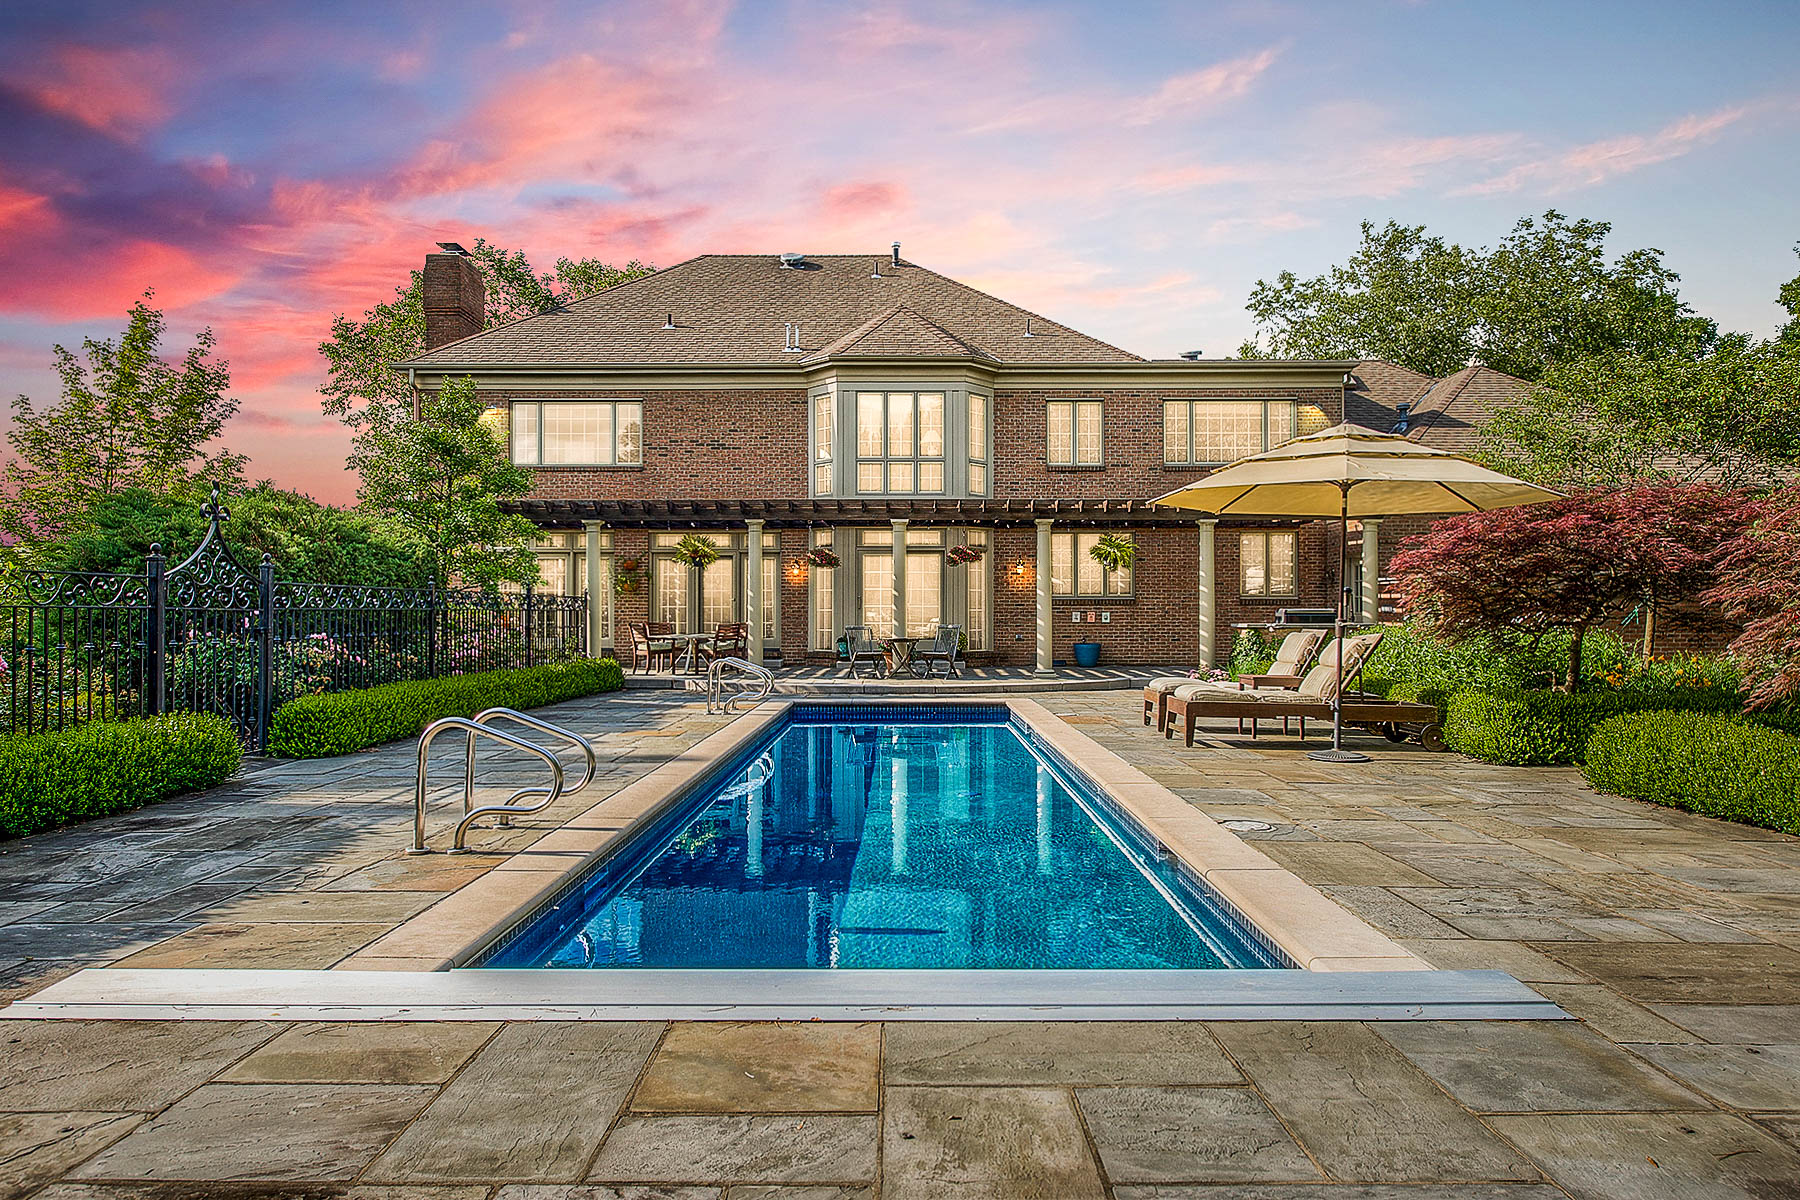 Single Family Homes for Sale at 4101 Manor Oaks Ct 4101 Manor Oaks Court Export, Pennsylvania 15632 United States